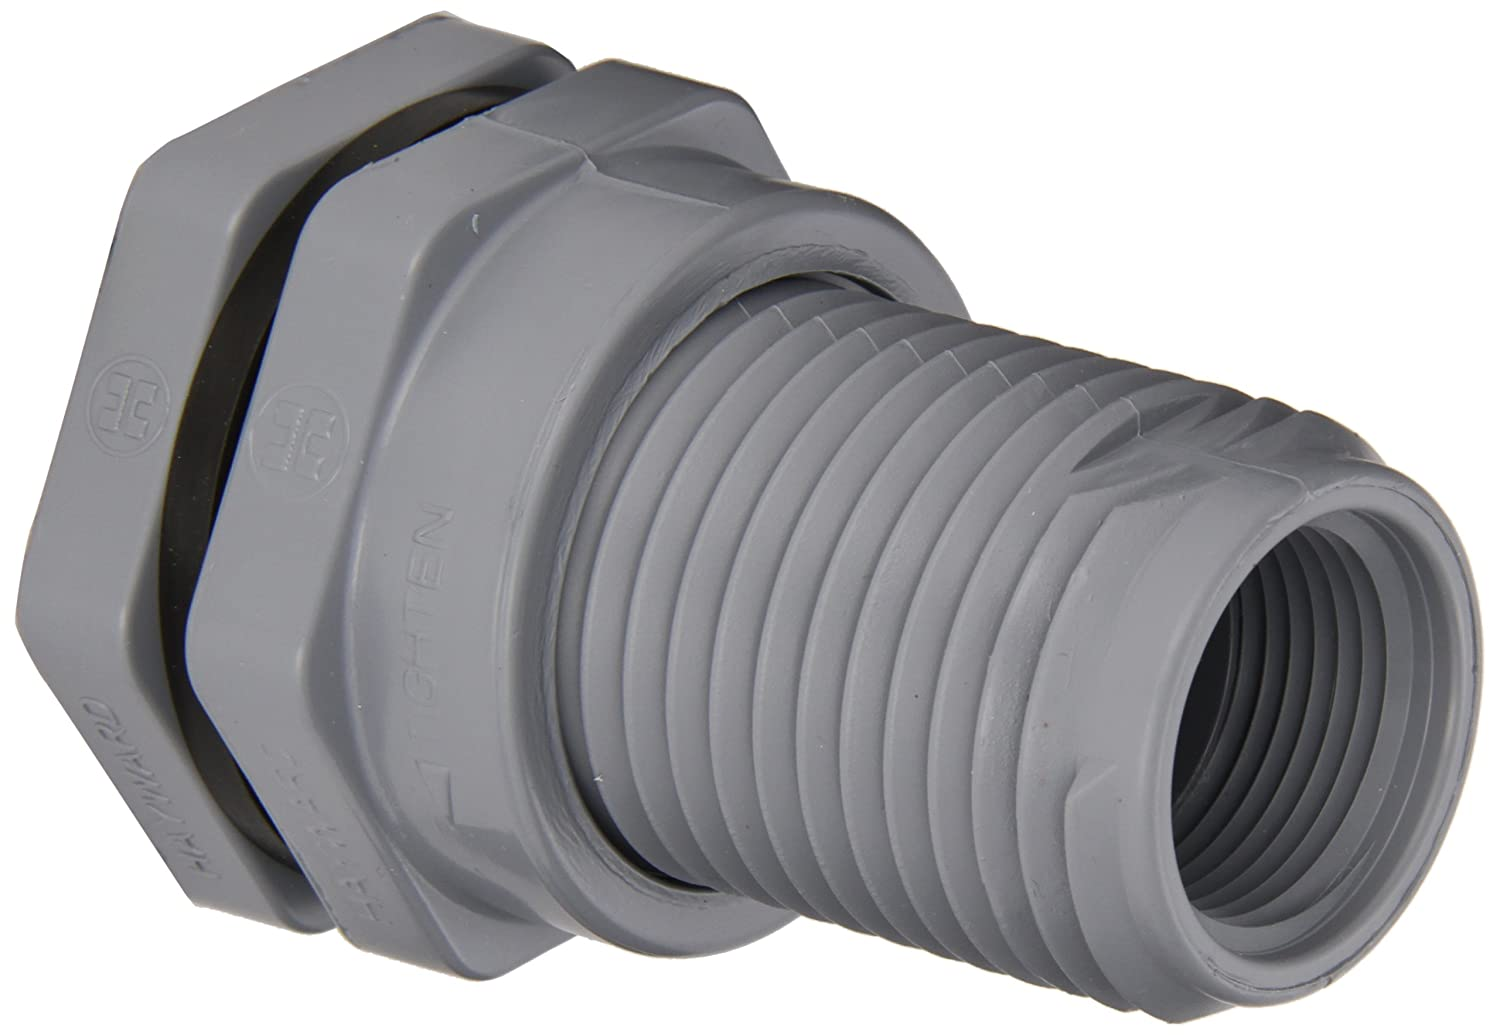 1 Size 1 Size Hayward Industries Inc. Threaded x Threaded End Hayward BFA2010TFS Series BFA Standard Flange Bulkhead Fitting CPVC with FPM Seals